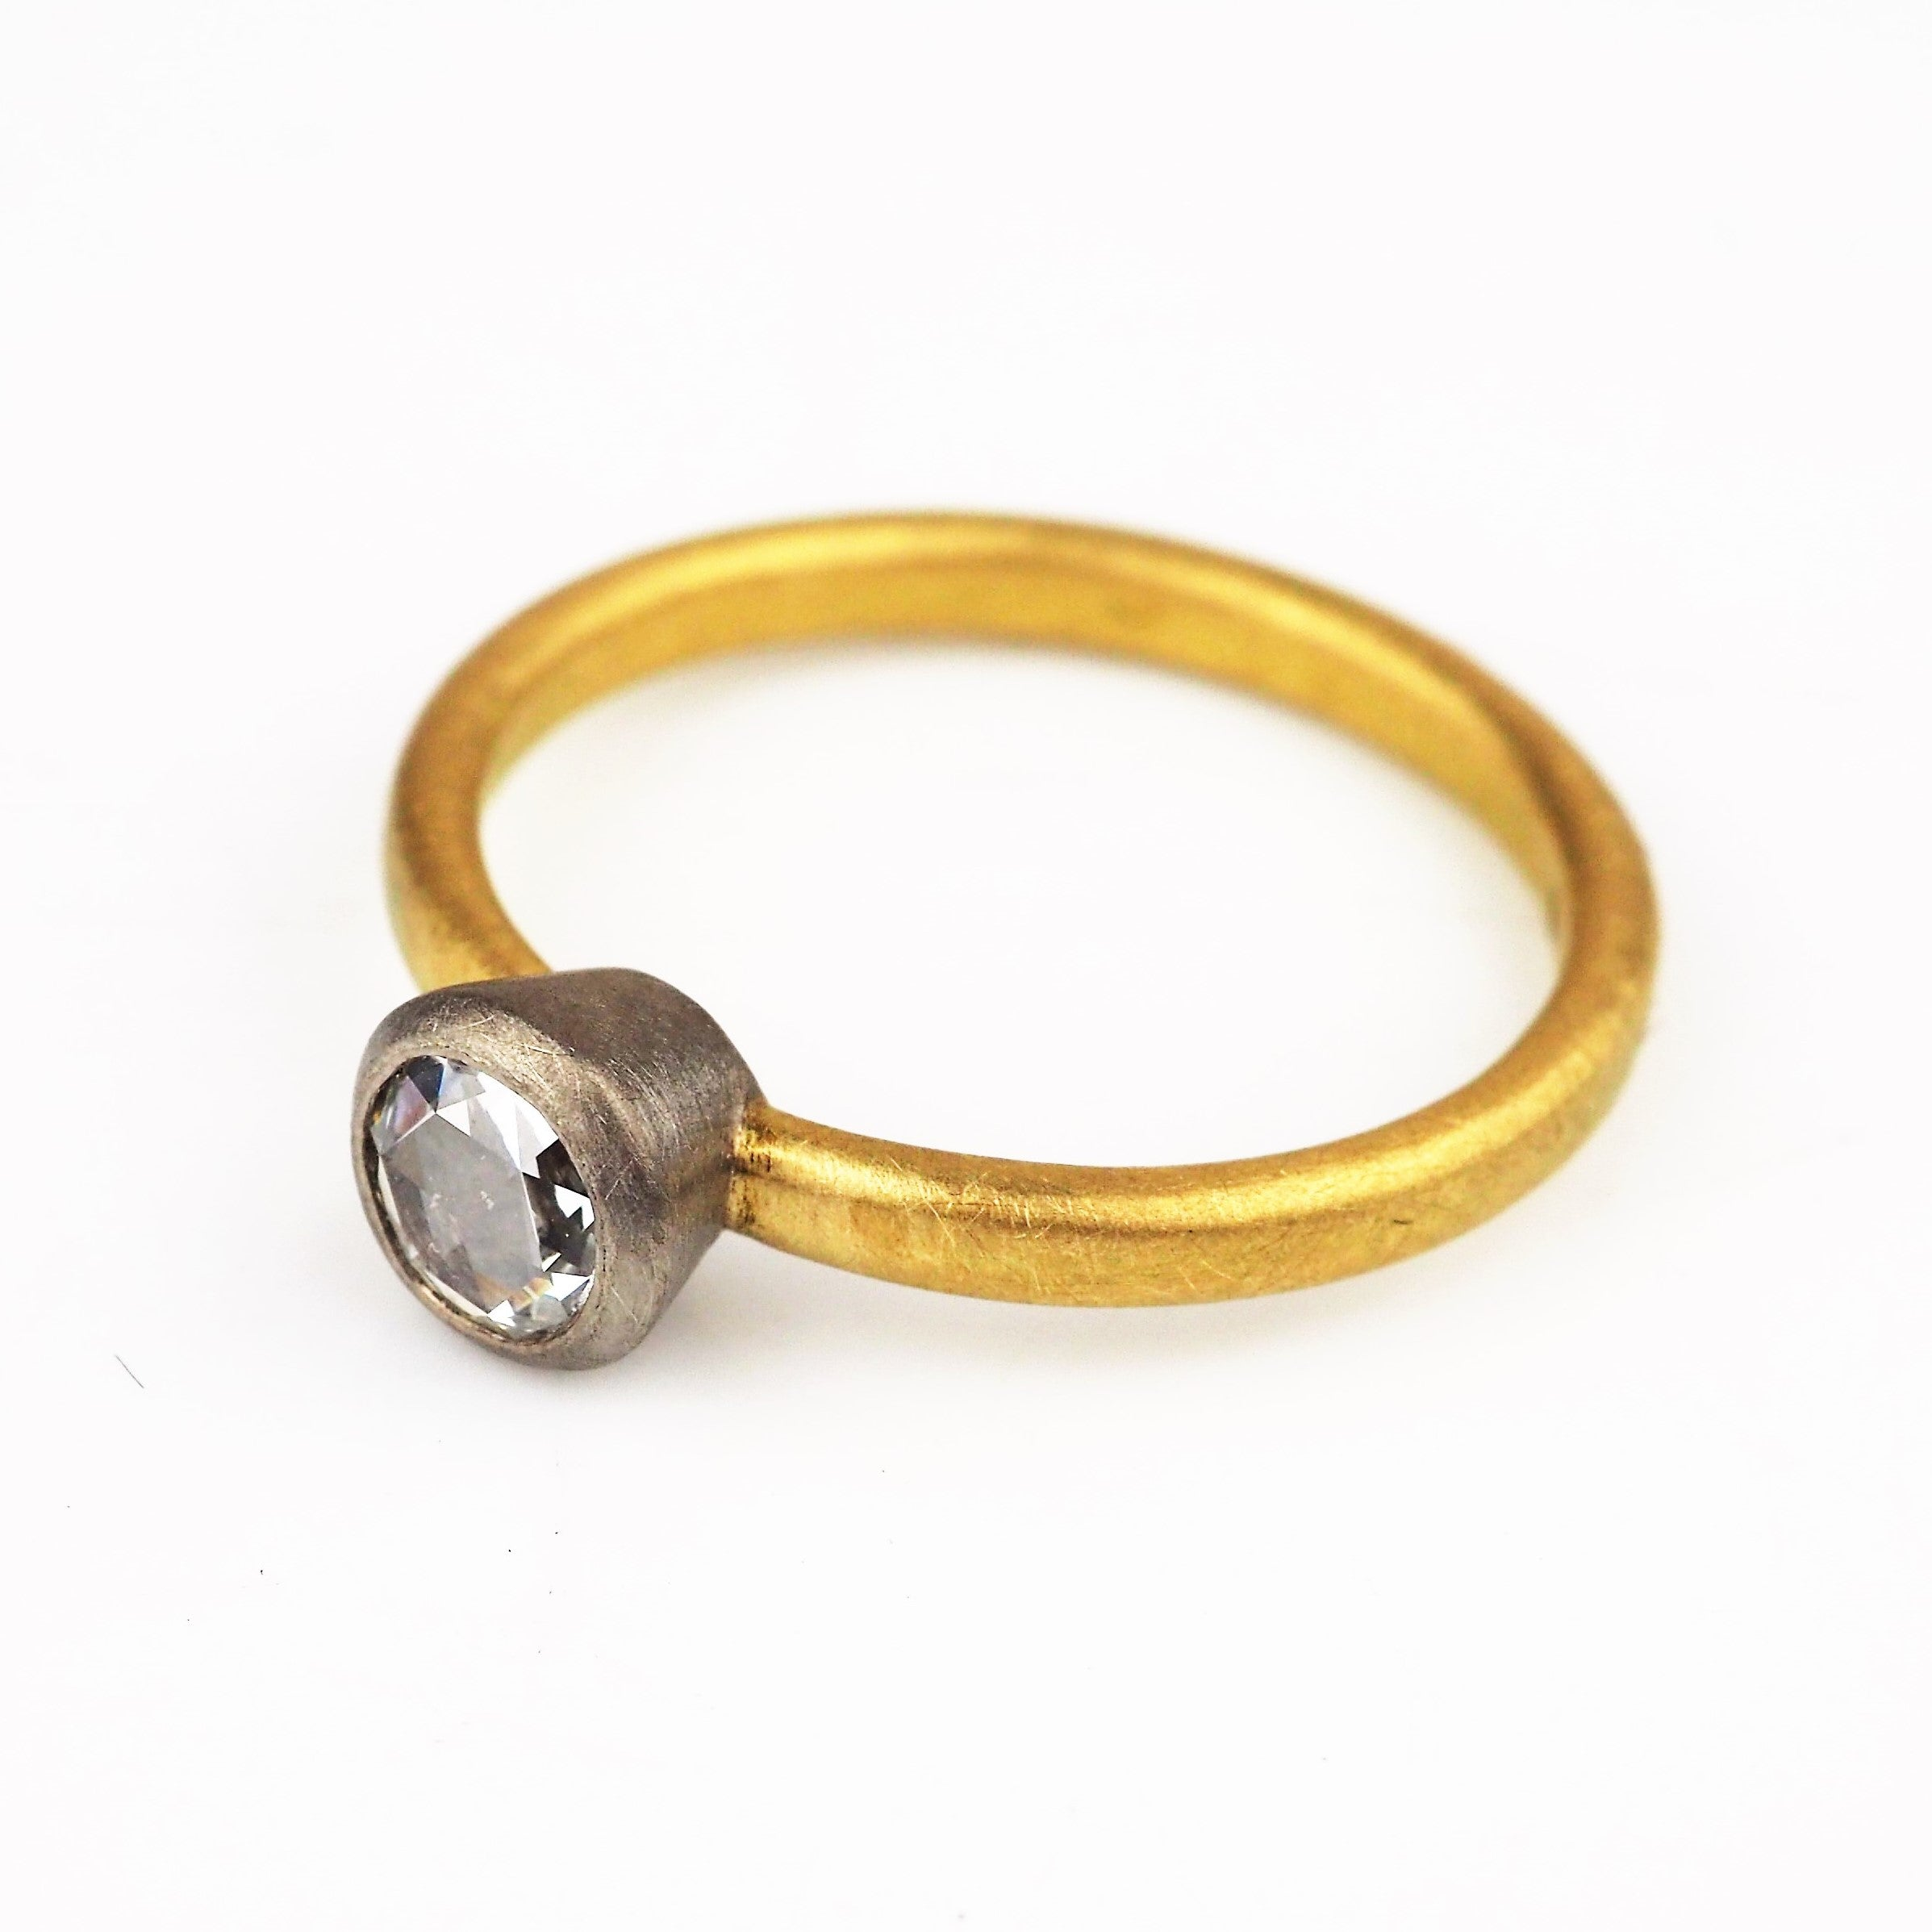 Harris, Natalie - White and Yellow Gold Ring | Natalie Harris | Primavera Gallery